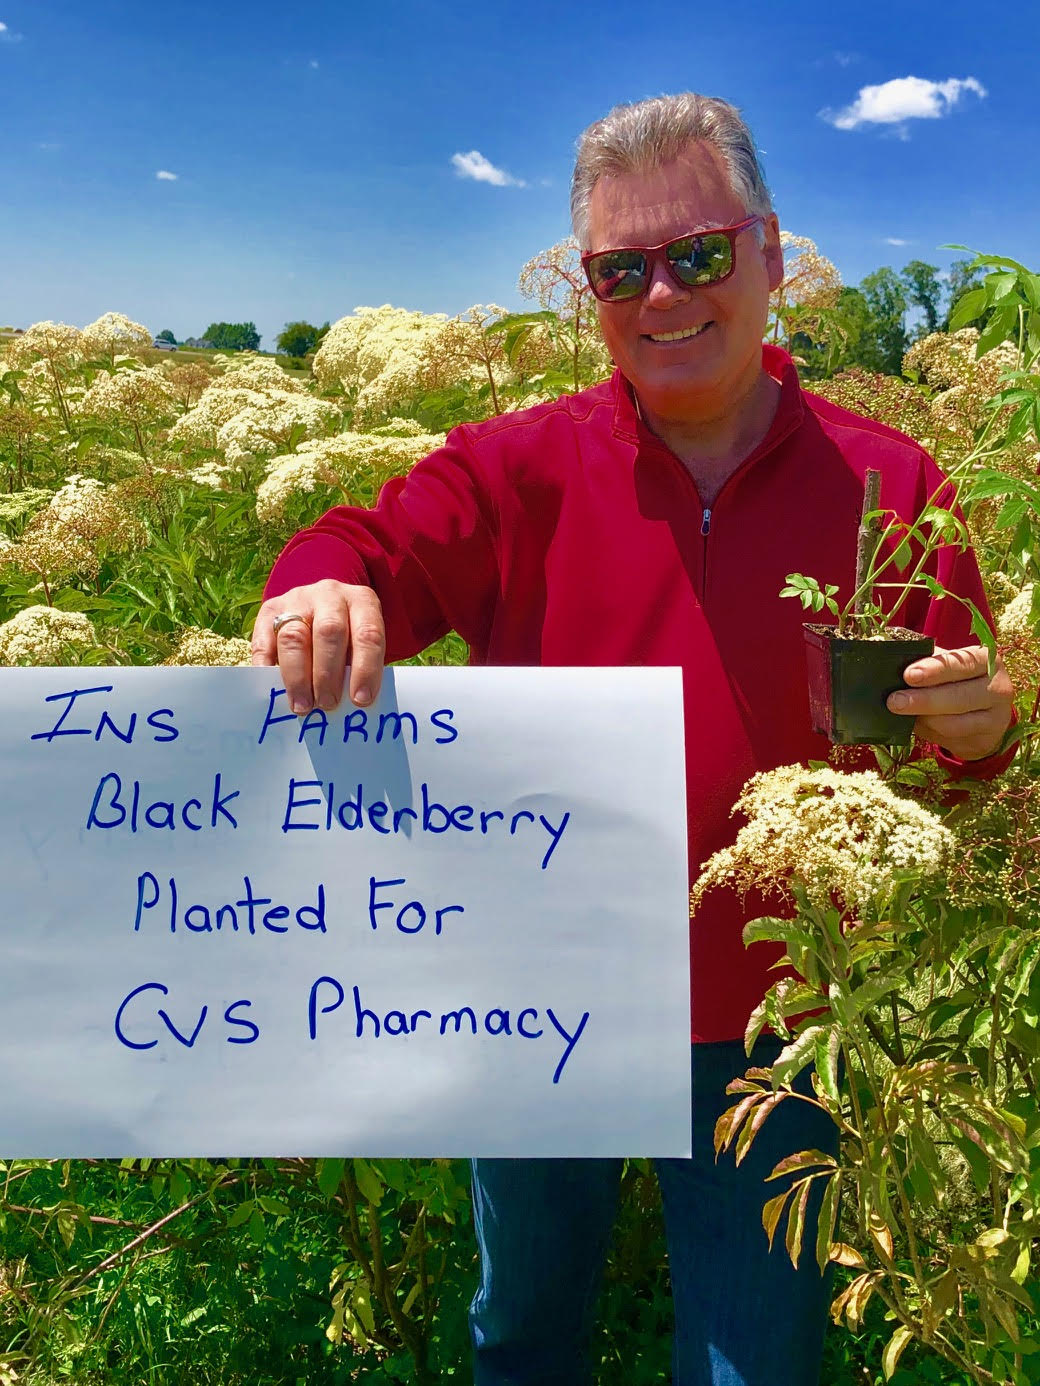 Plant-Elderberry-CVS-Pharmacy.jpg